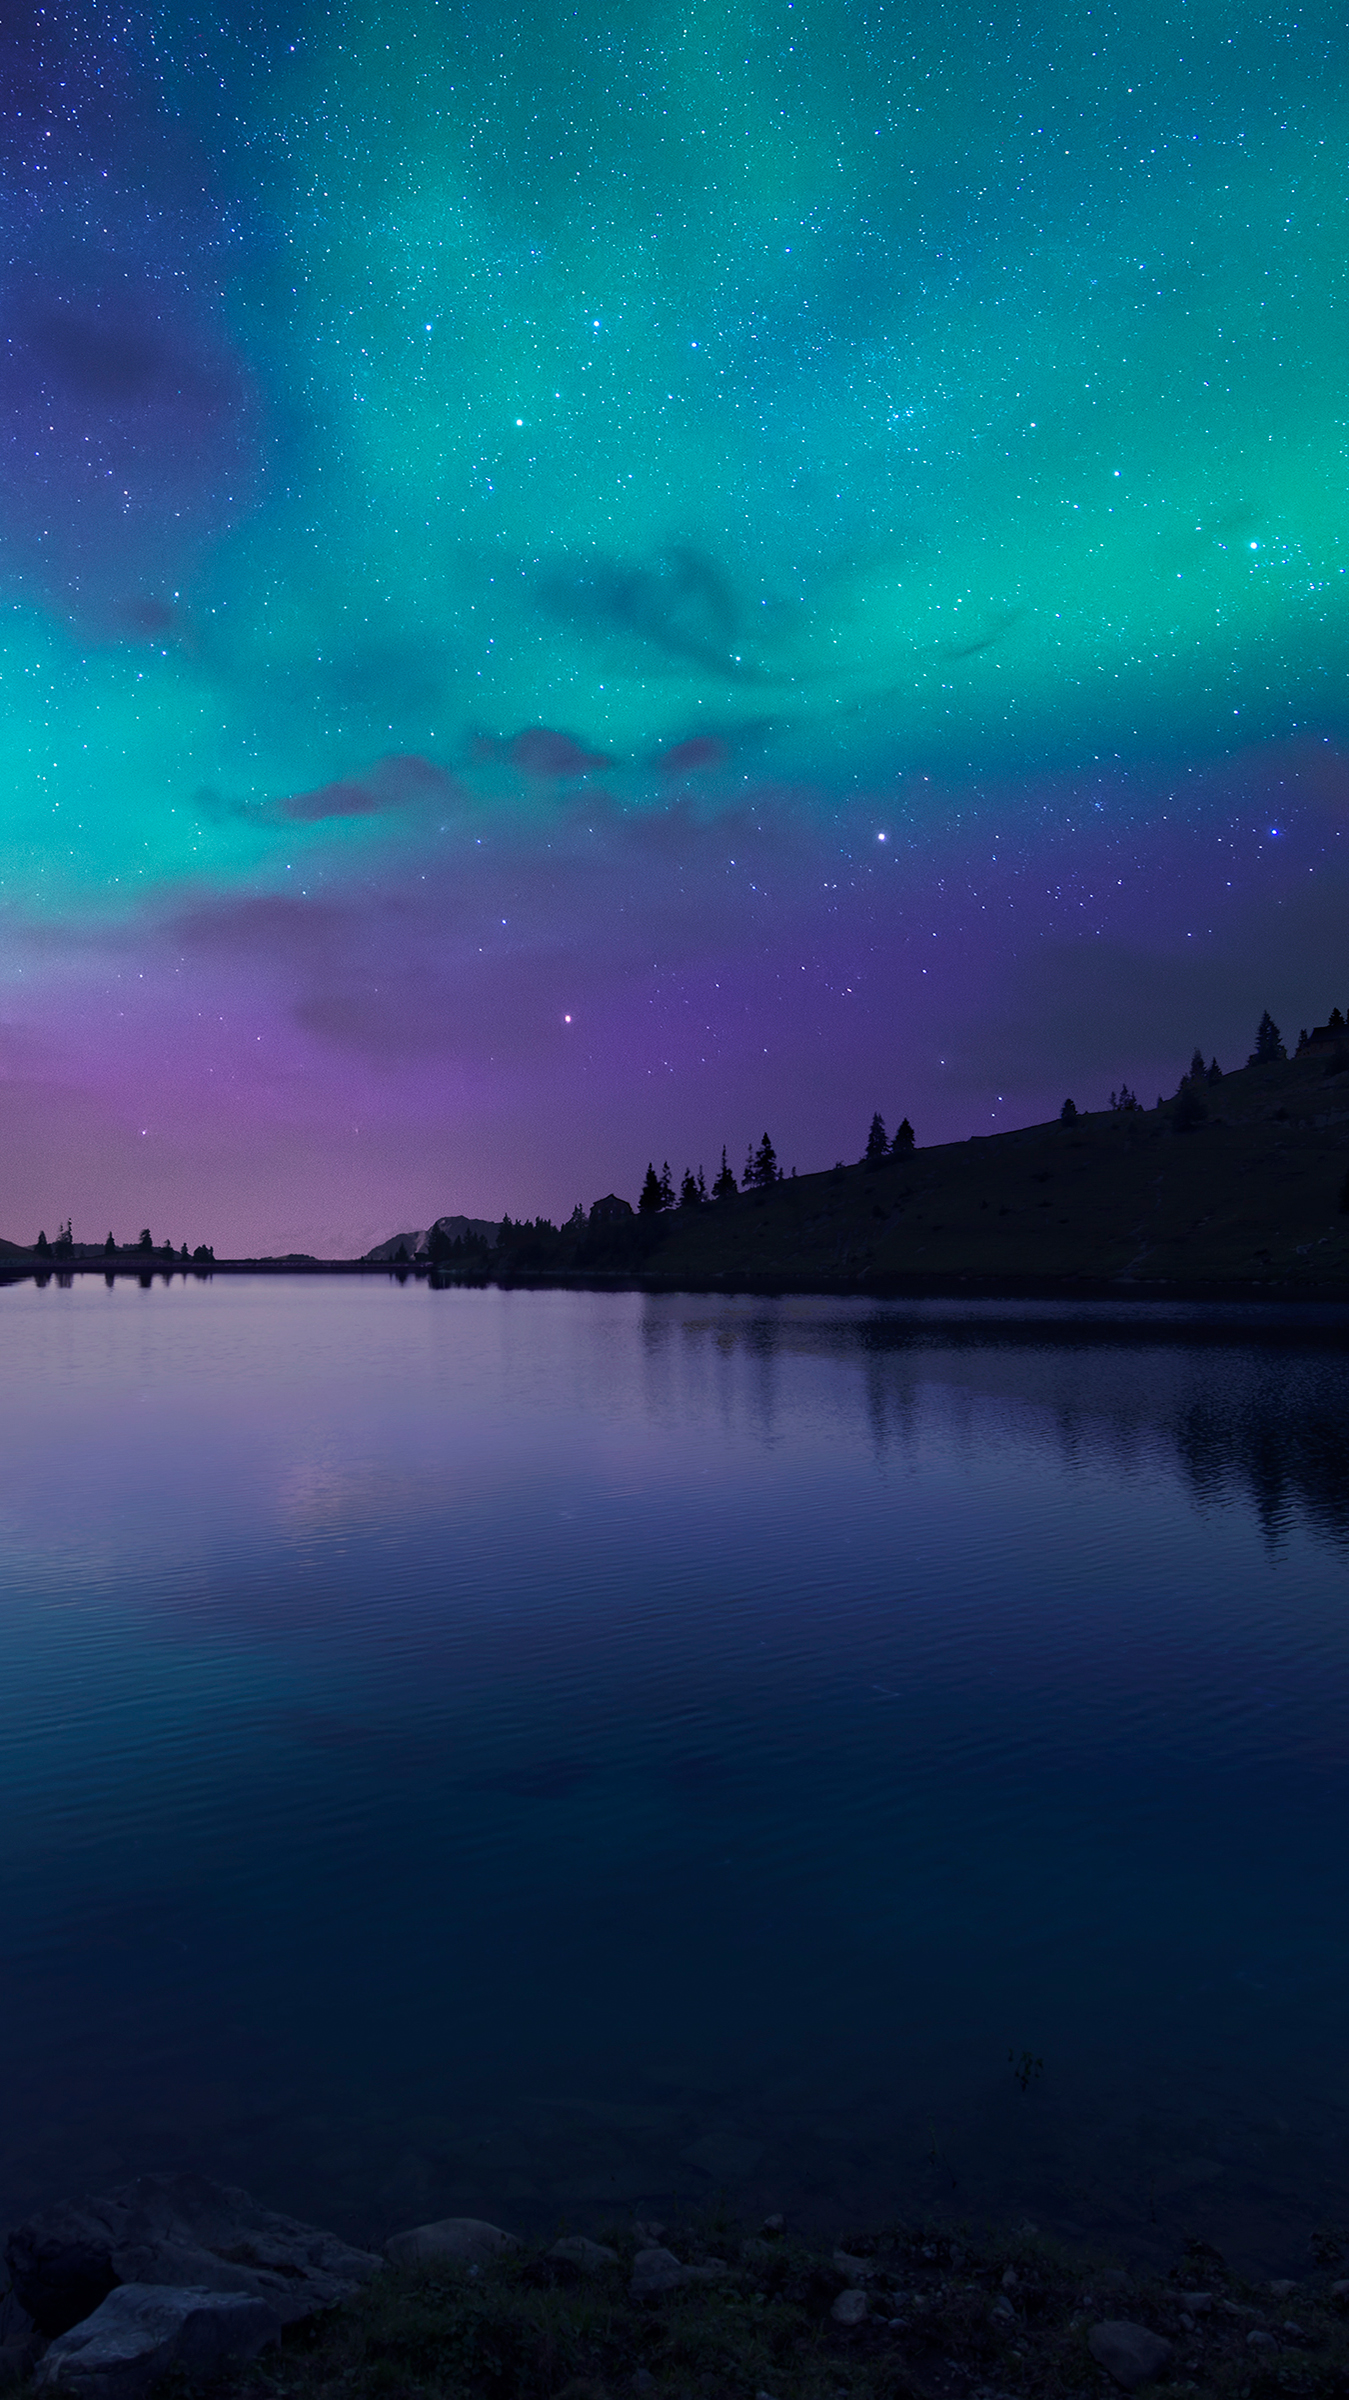 Nightfallatlakeaurora